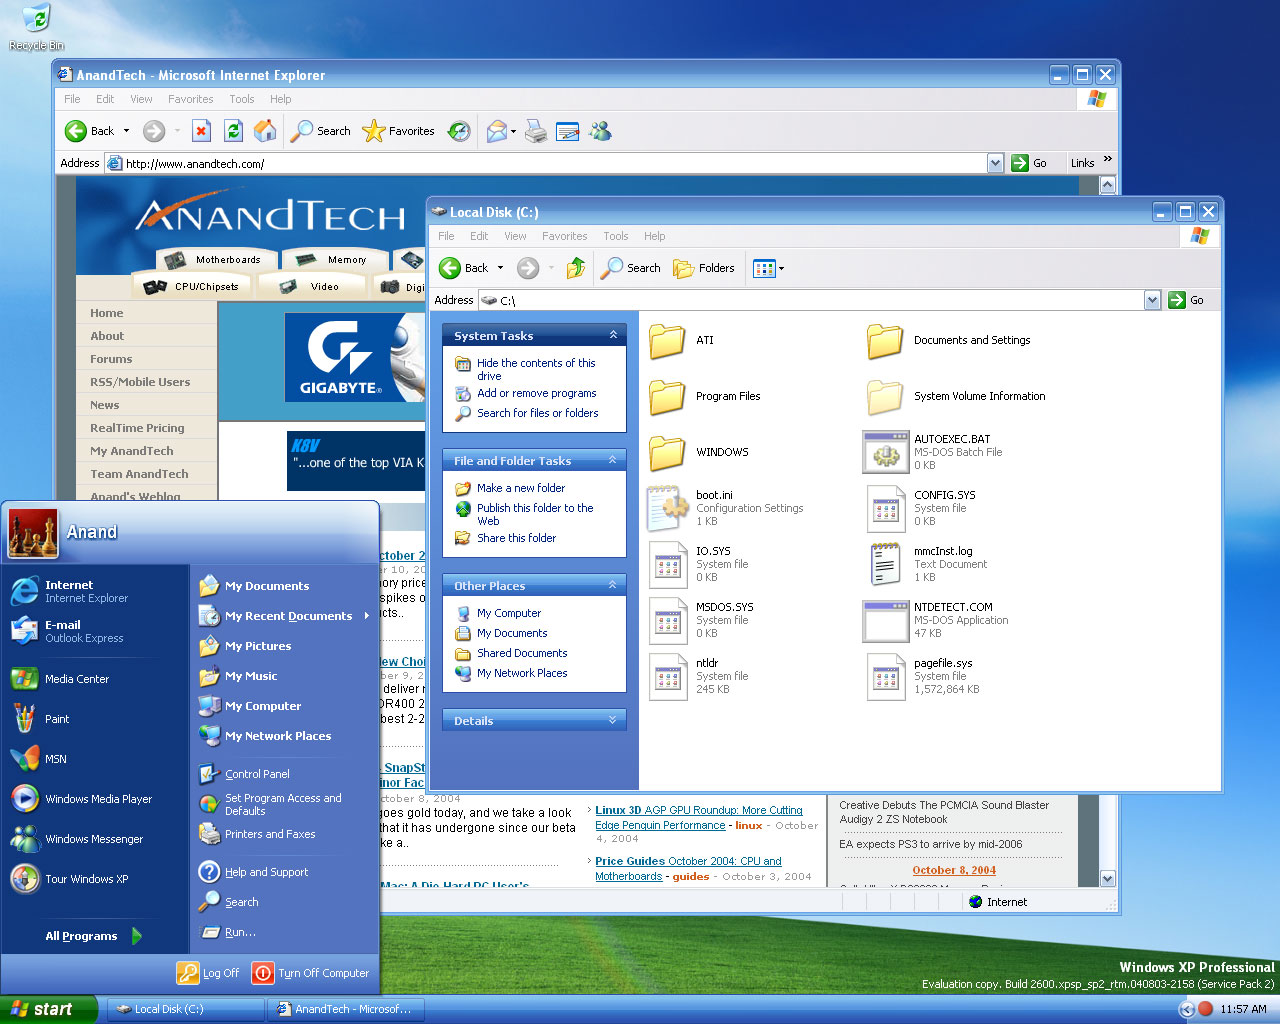 Windows xp media center edition 2018 sp3 19 oem: trabricont.